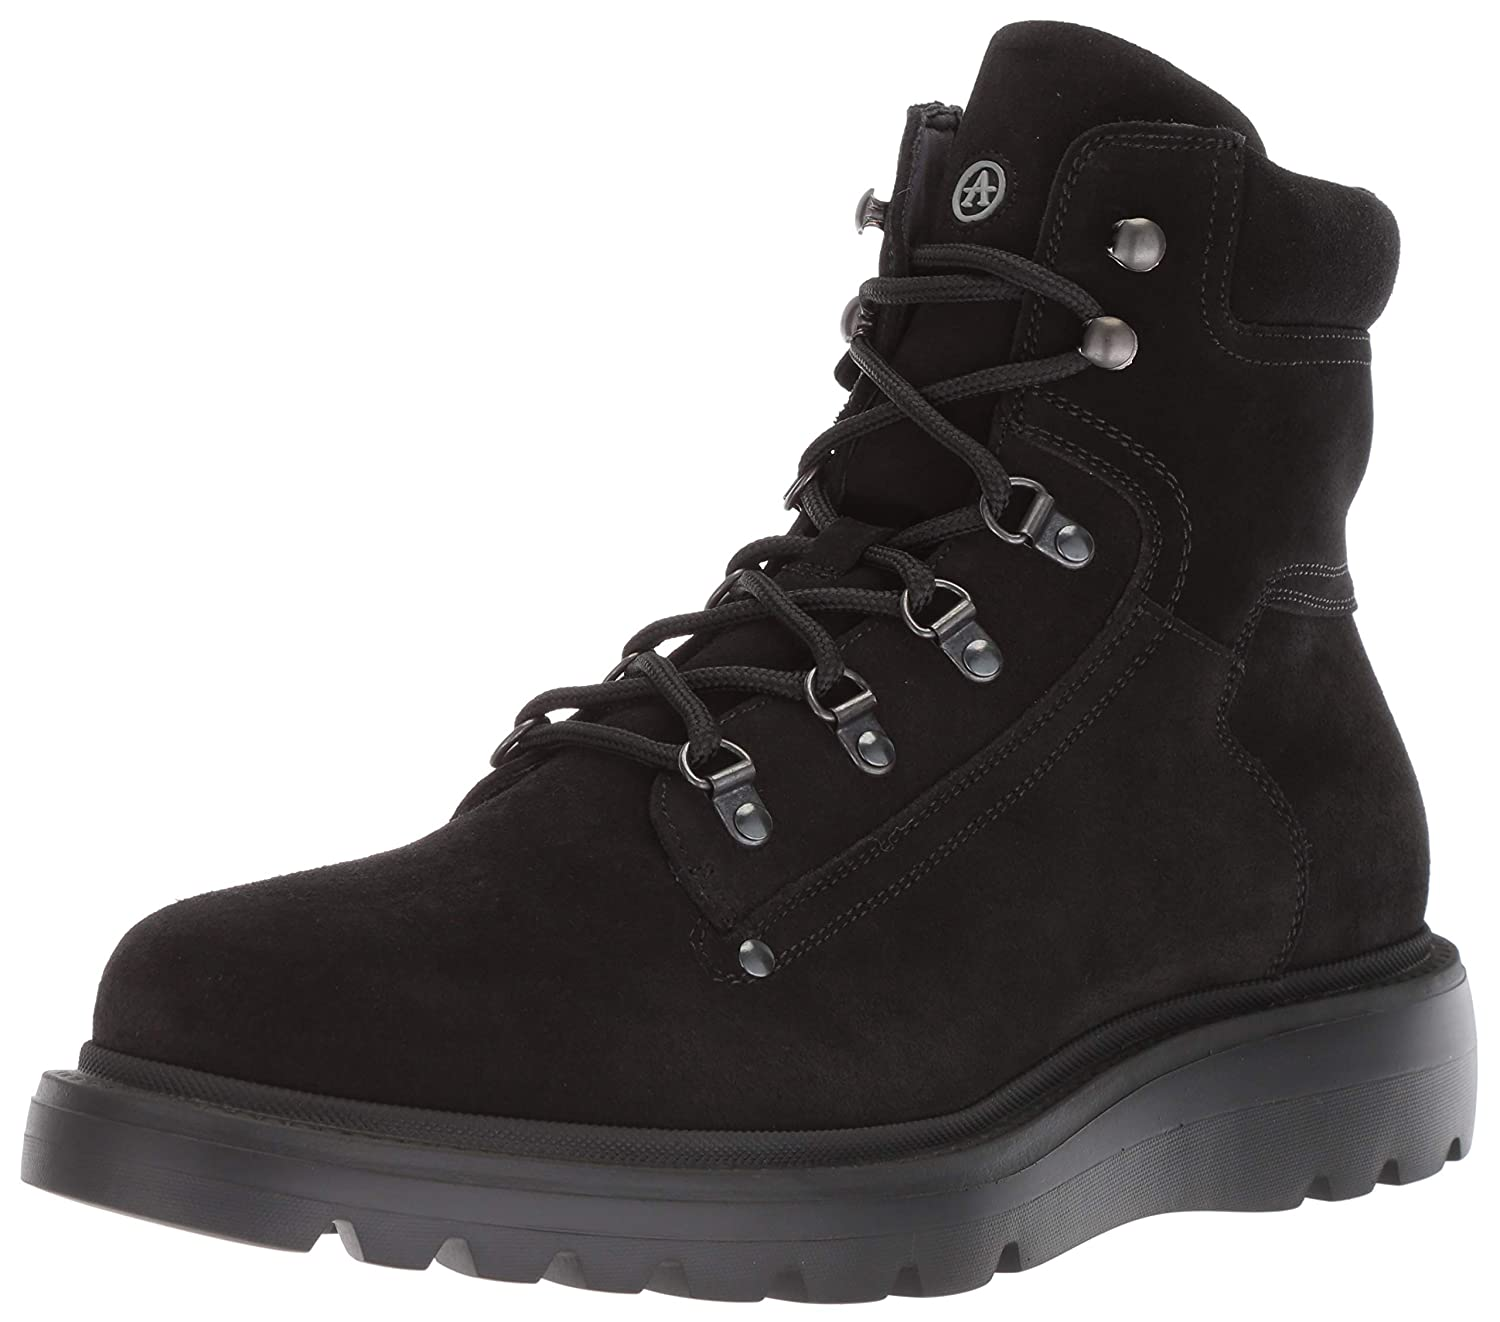 Image of Aquatalia Men's Christopher Suede Hiking Boot Hiking Boots